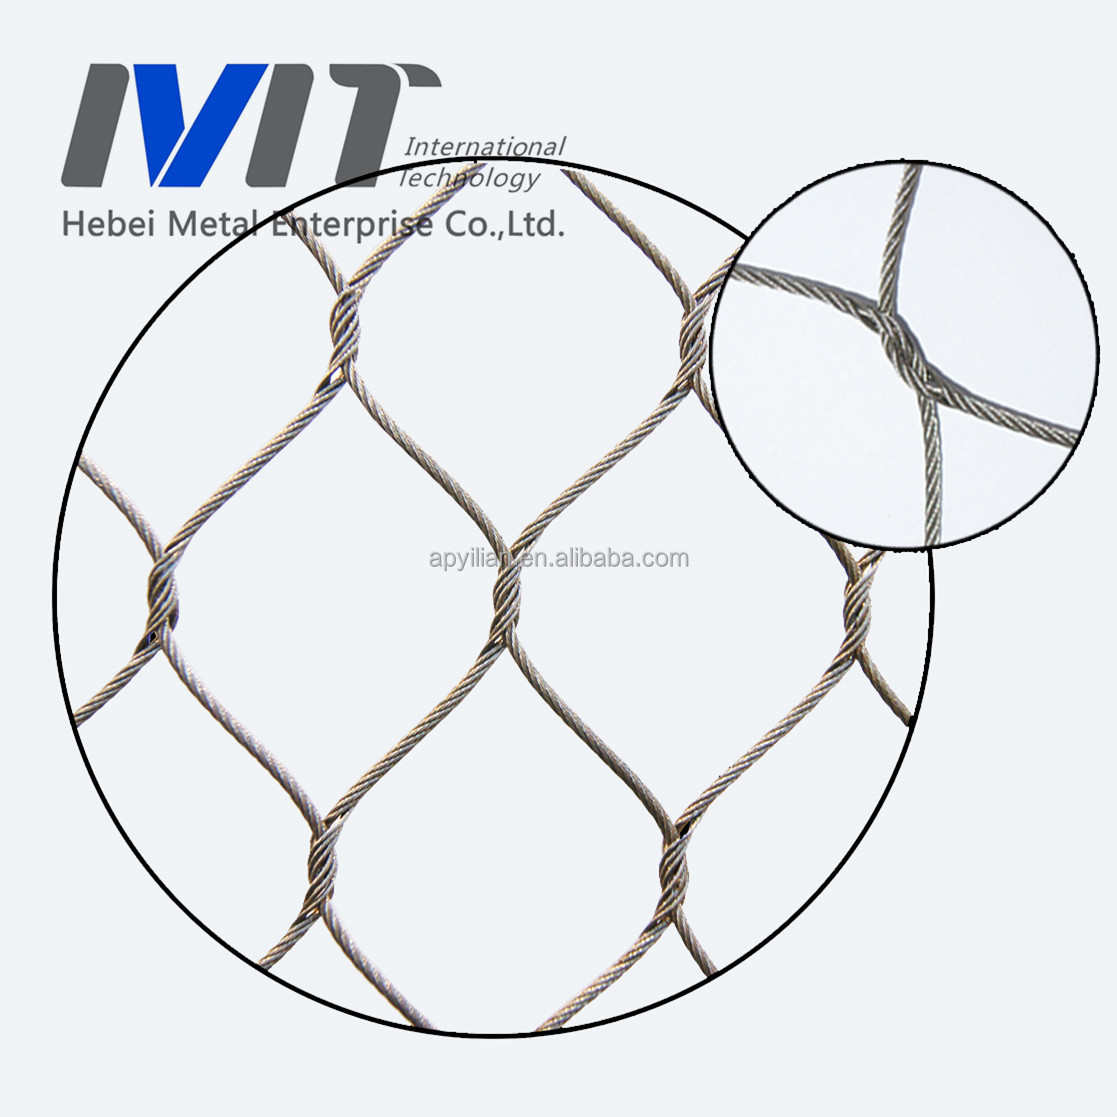 MT stainless steel flexible metal mesh fabric